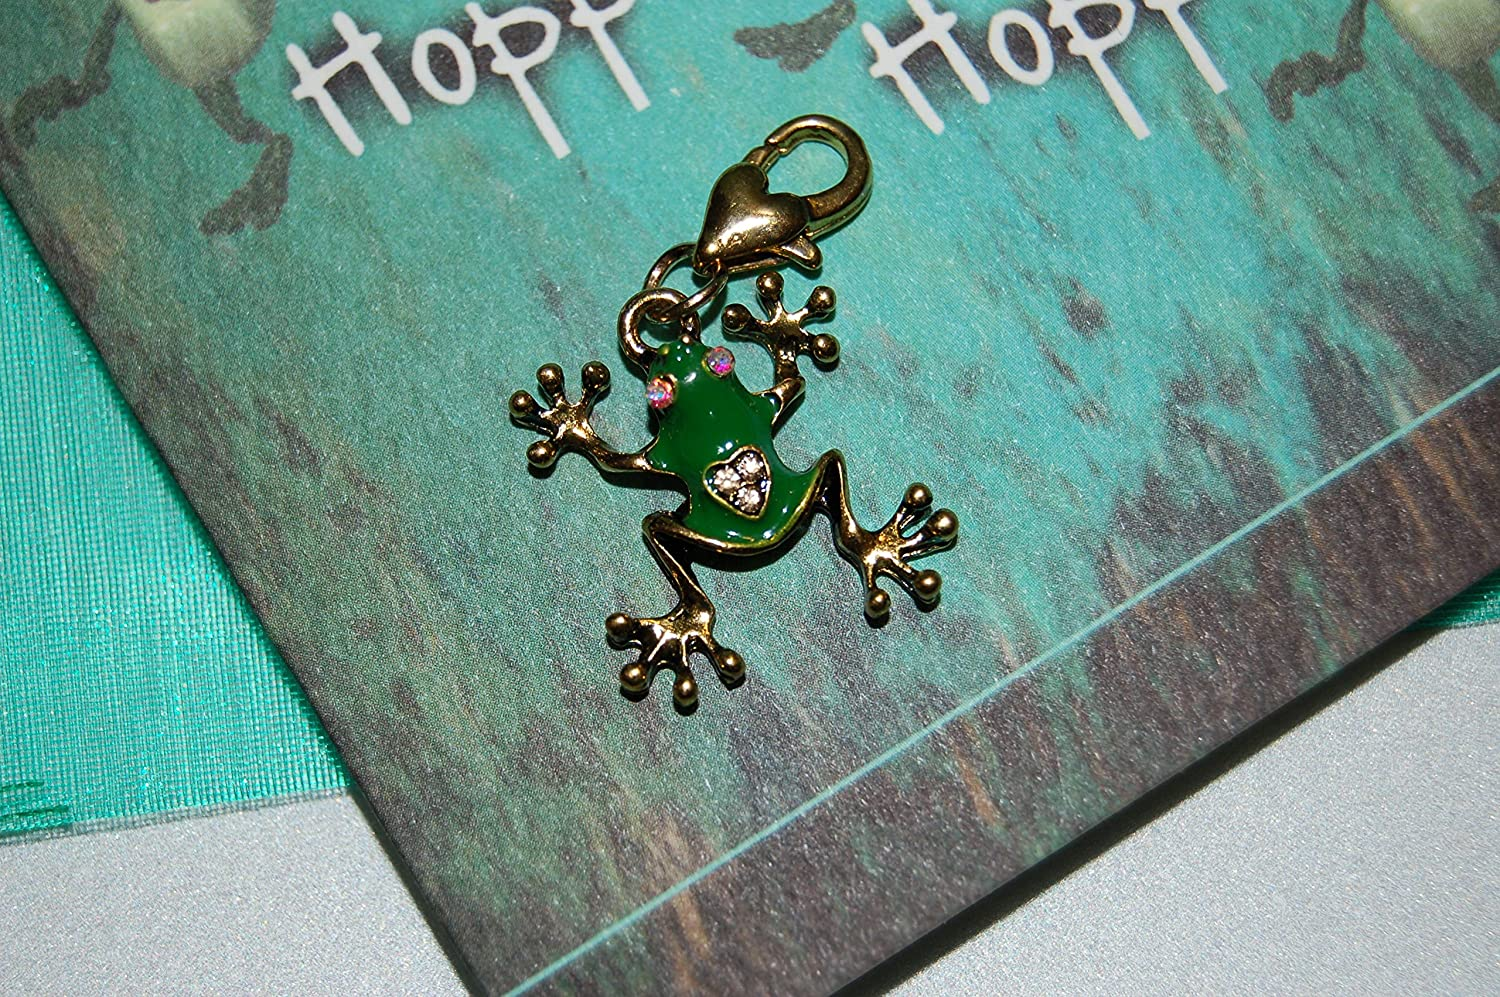 Smiling Wisdom Pegasus Sea Turtle Gift Sets Console Greeting Cards Sympathy and Happy Day Encourage 3 Origami Games /& Colorful Handmade Charms w Rhinestones Joyful Encouragement Frog